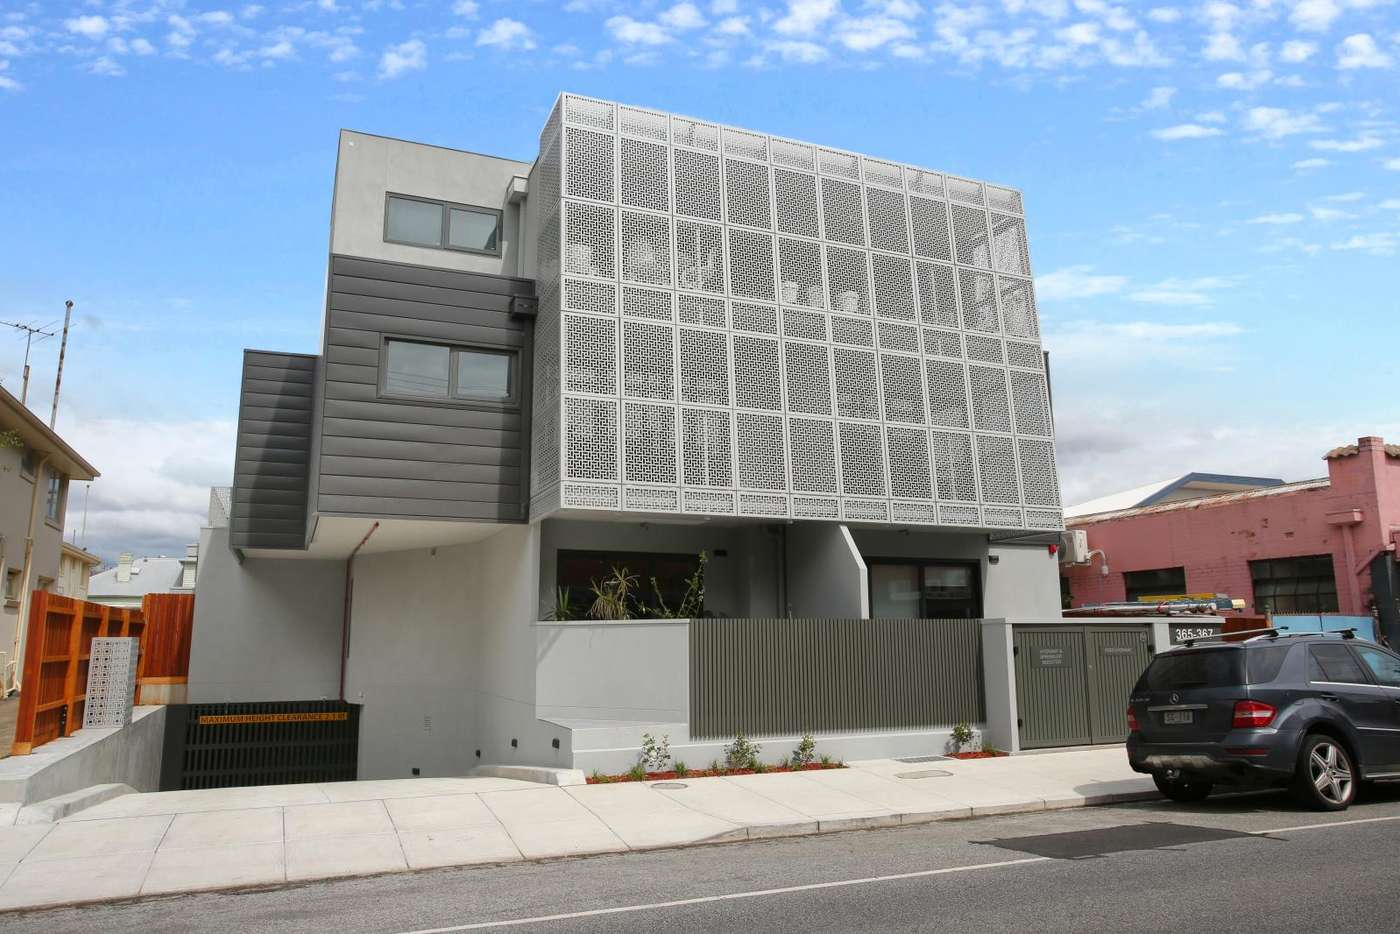 Main view of Homely unit listing, 103/365-367 Neerim Road, Carnegie VIC 3163